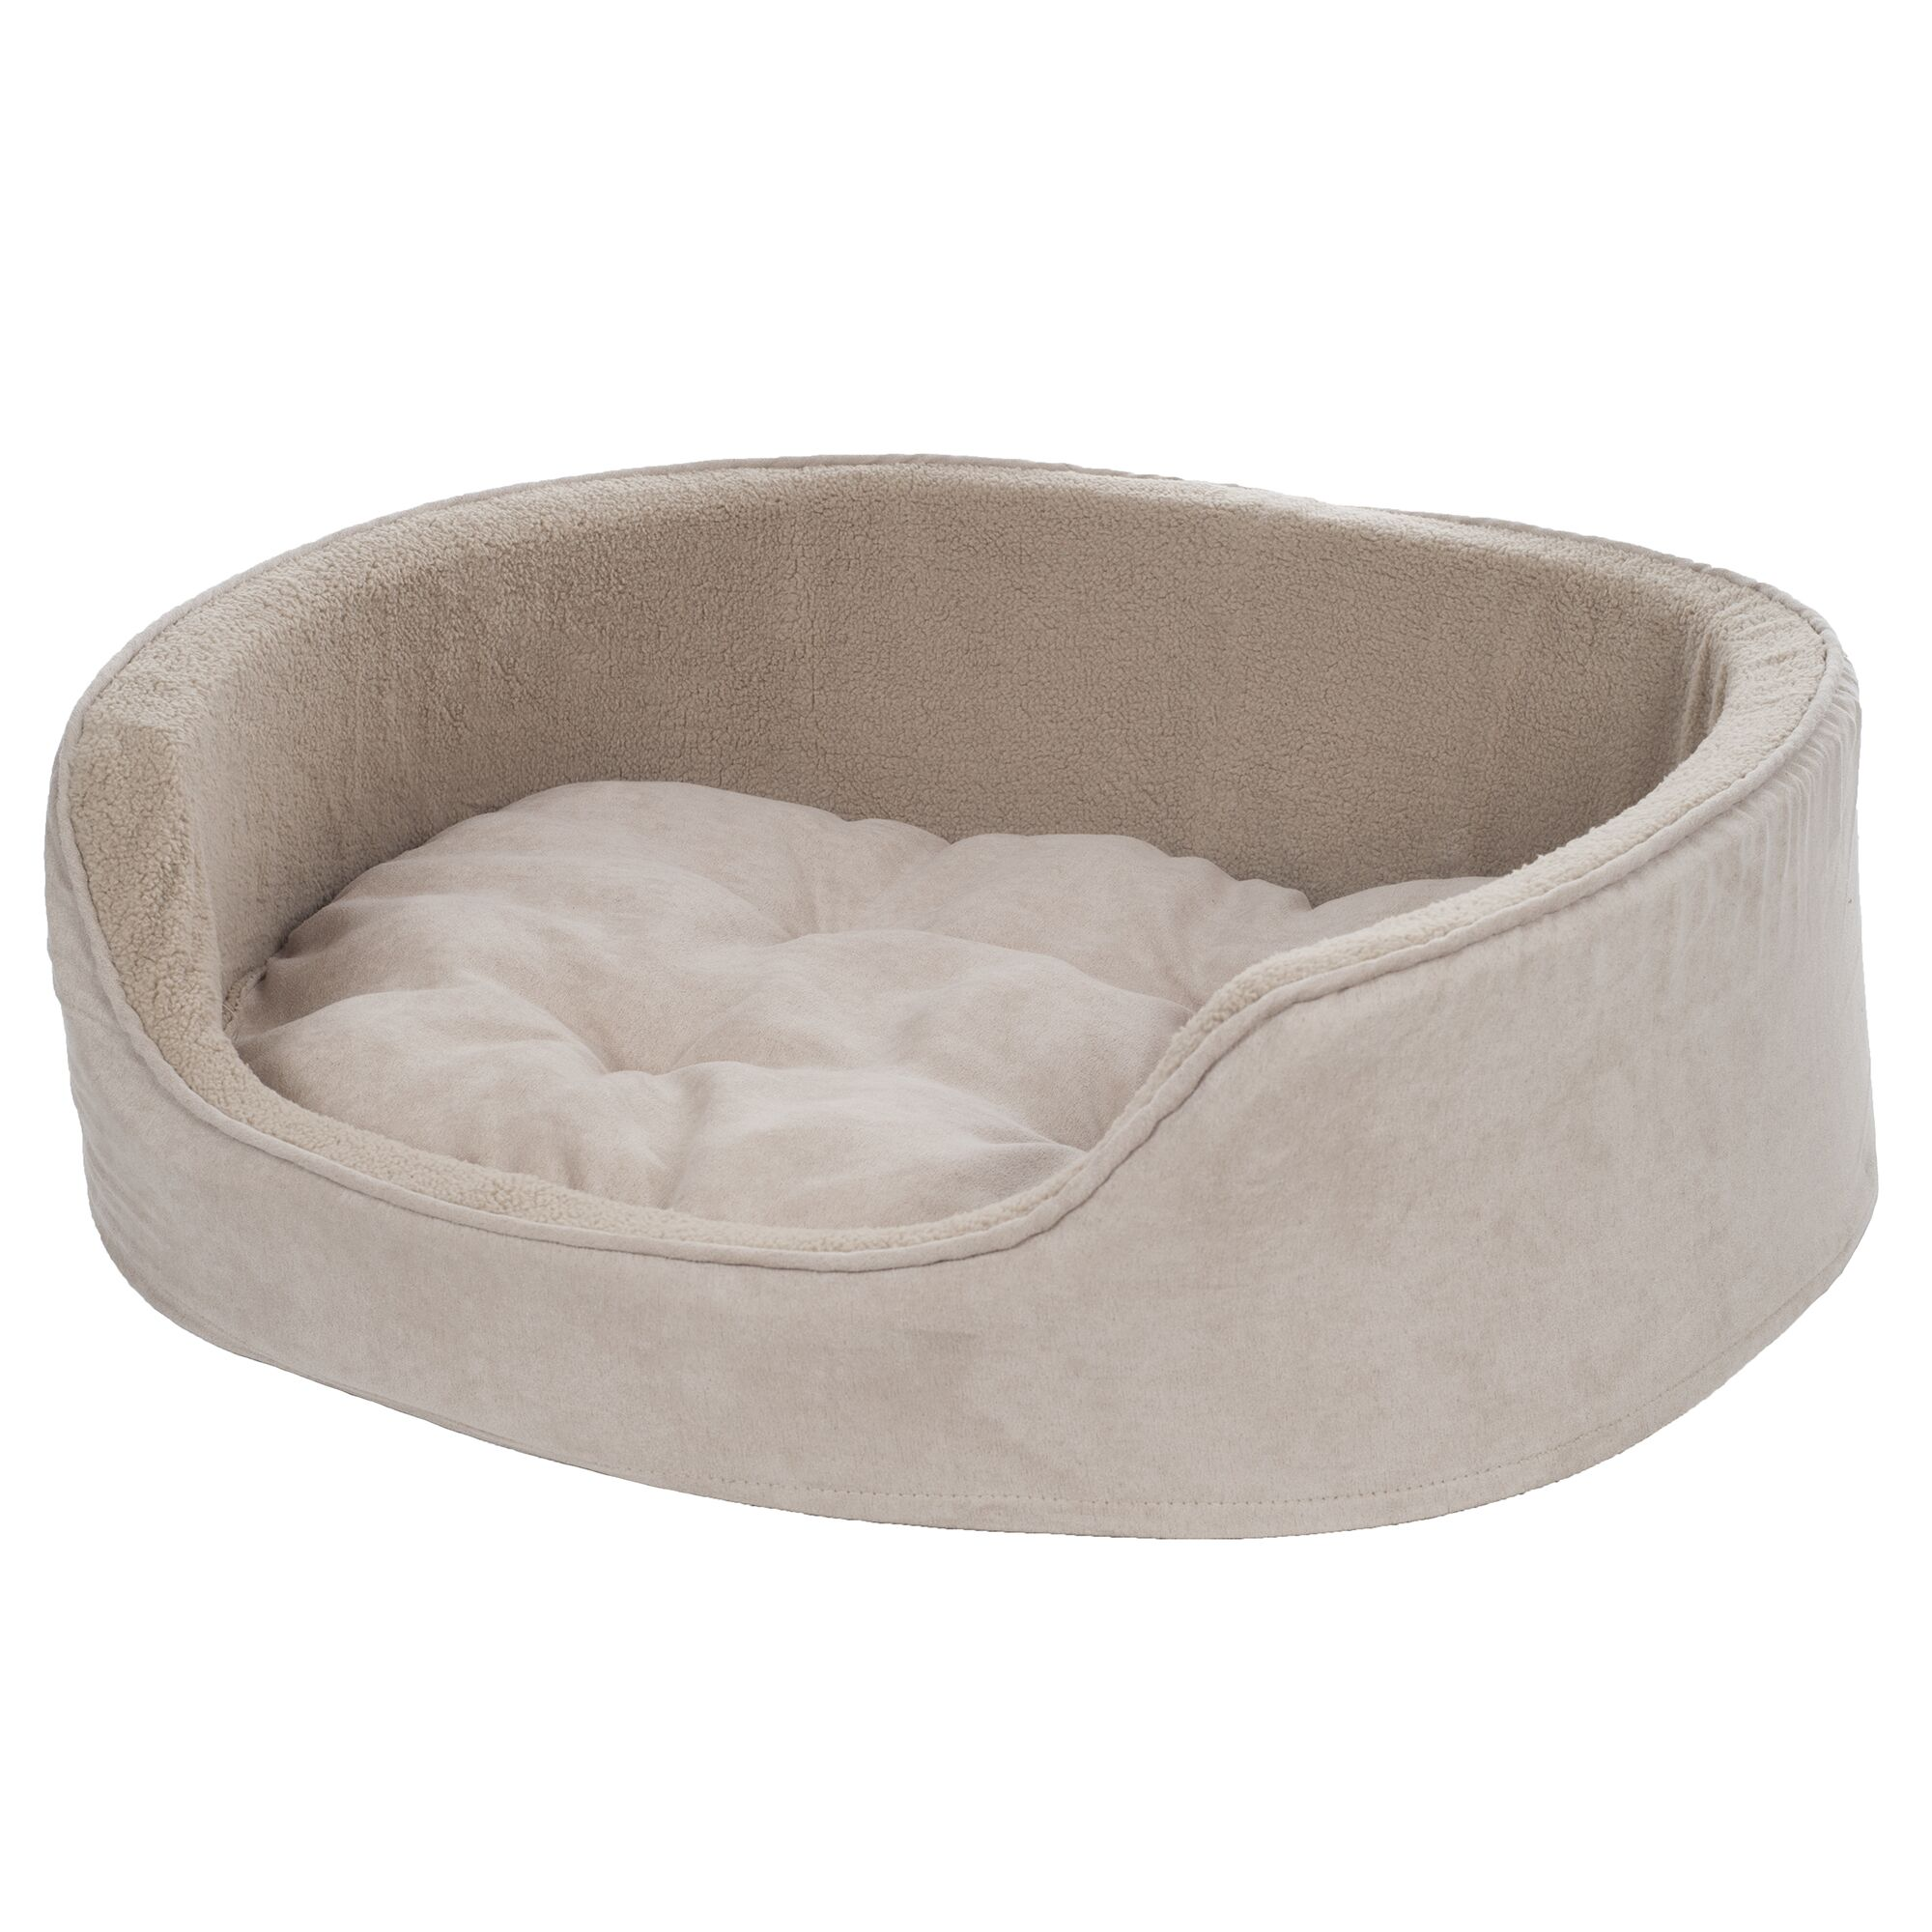 Microsuede Pet Bolster with Zippered Closure Size: Small (23